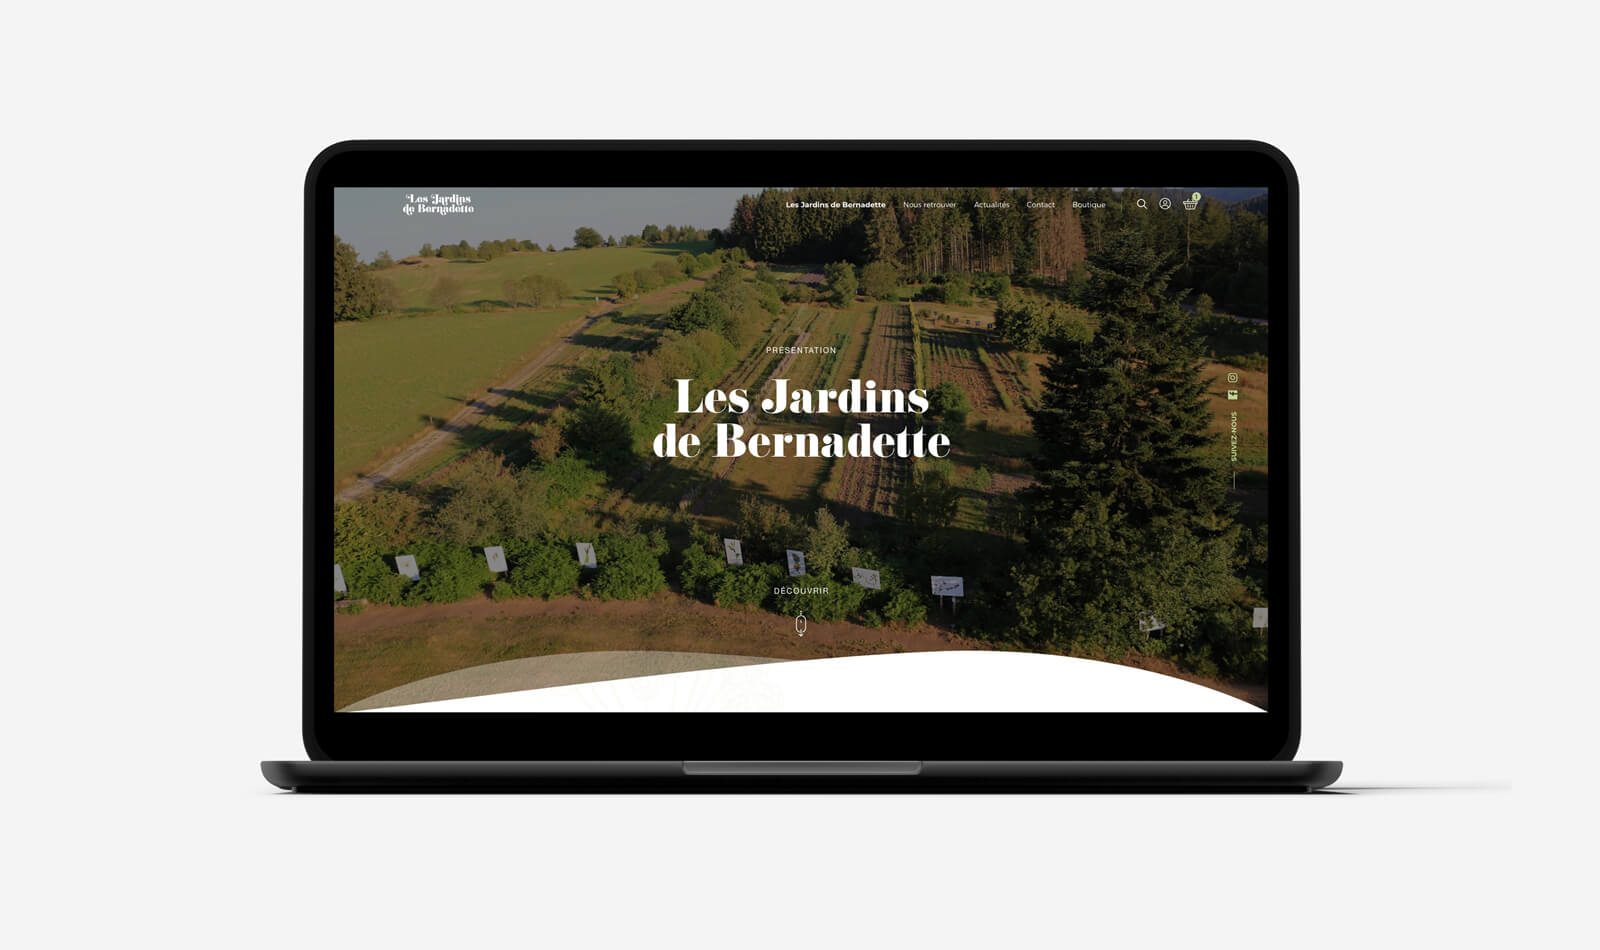 lezardscreation agence communication publicite vosges remiremont les jardins de bernadette les jardins de bernadette macbook lezards creation